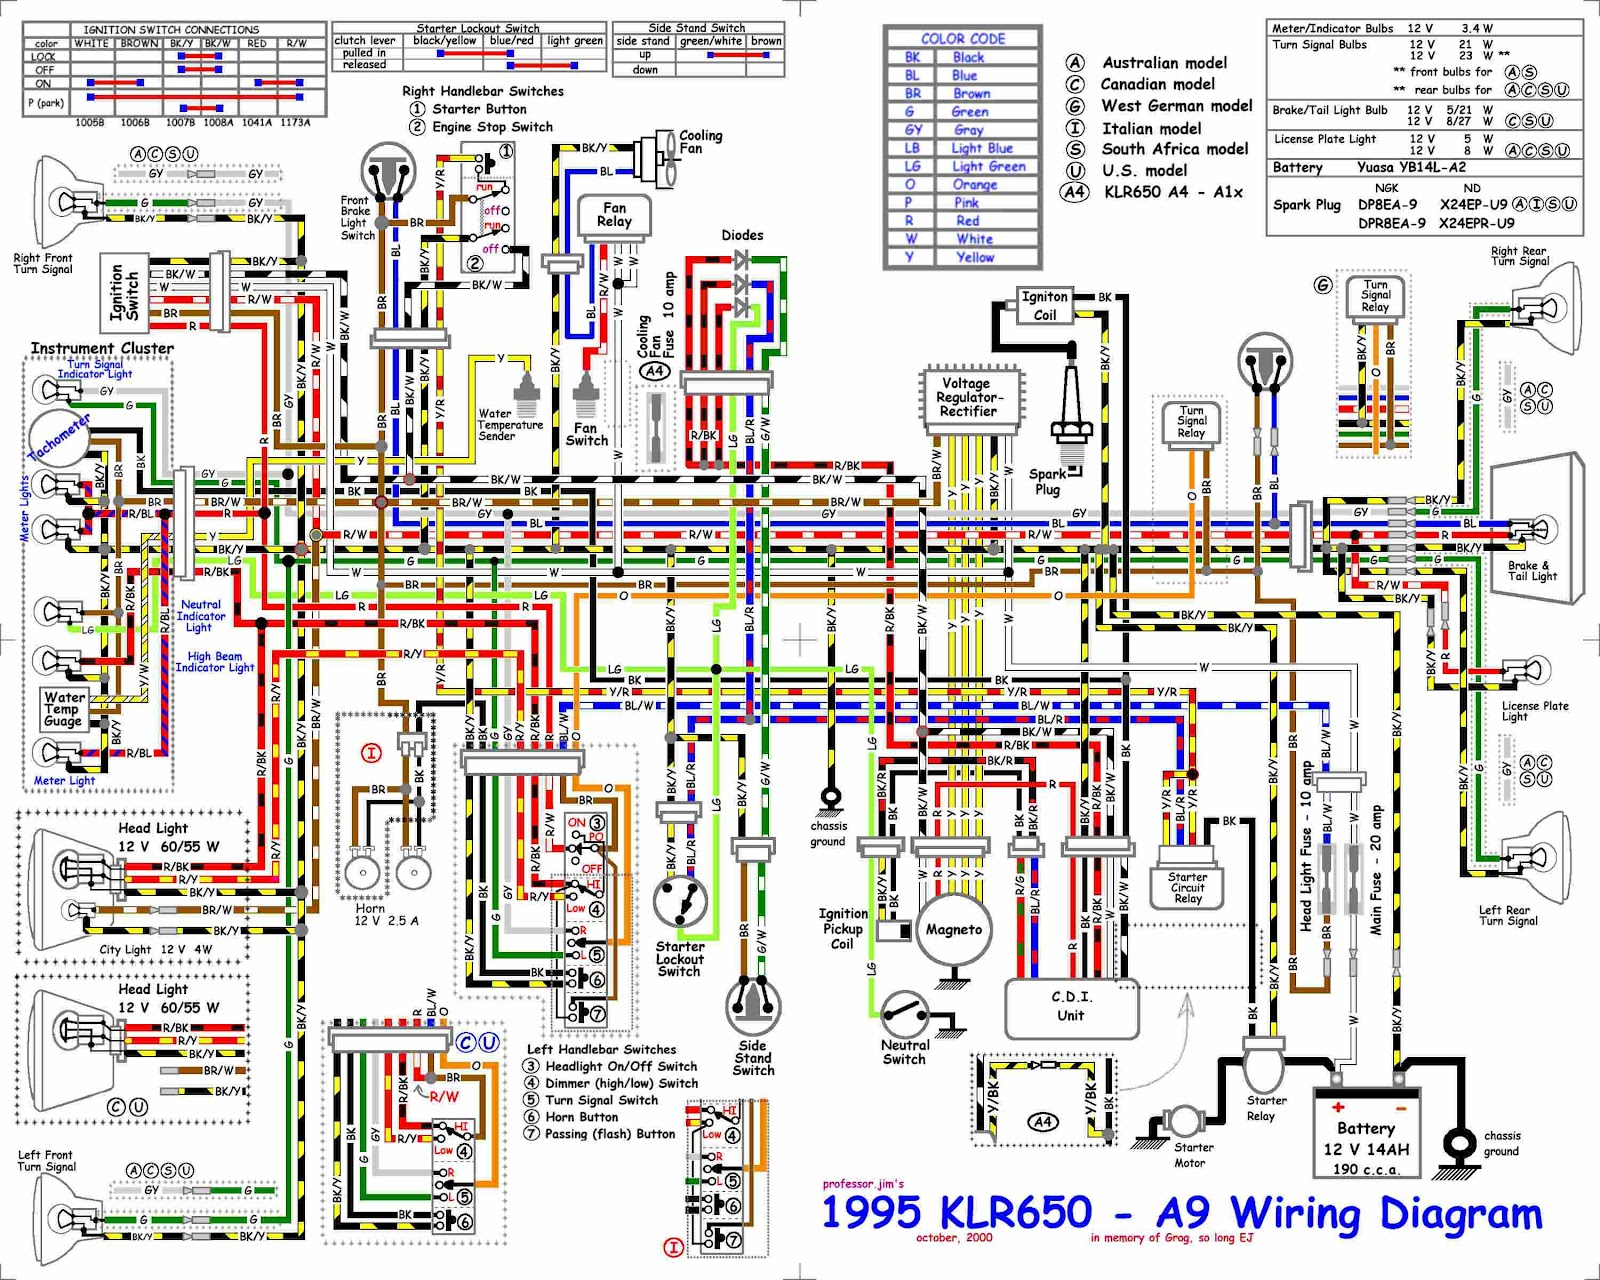 klr 250 turn signals wiring diagram wiring diagram Ford Electrical Wiring Diagrams klr 250 turn signals wiring diagram wiring libraryklr 250 1986 wiring diagram diy enthusiasts wiring diagrams